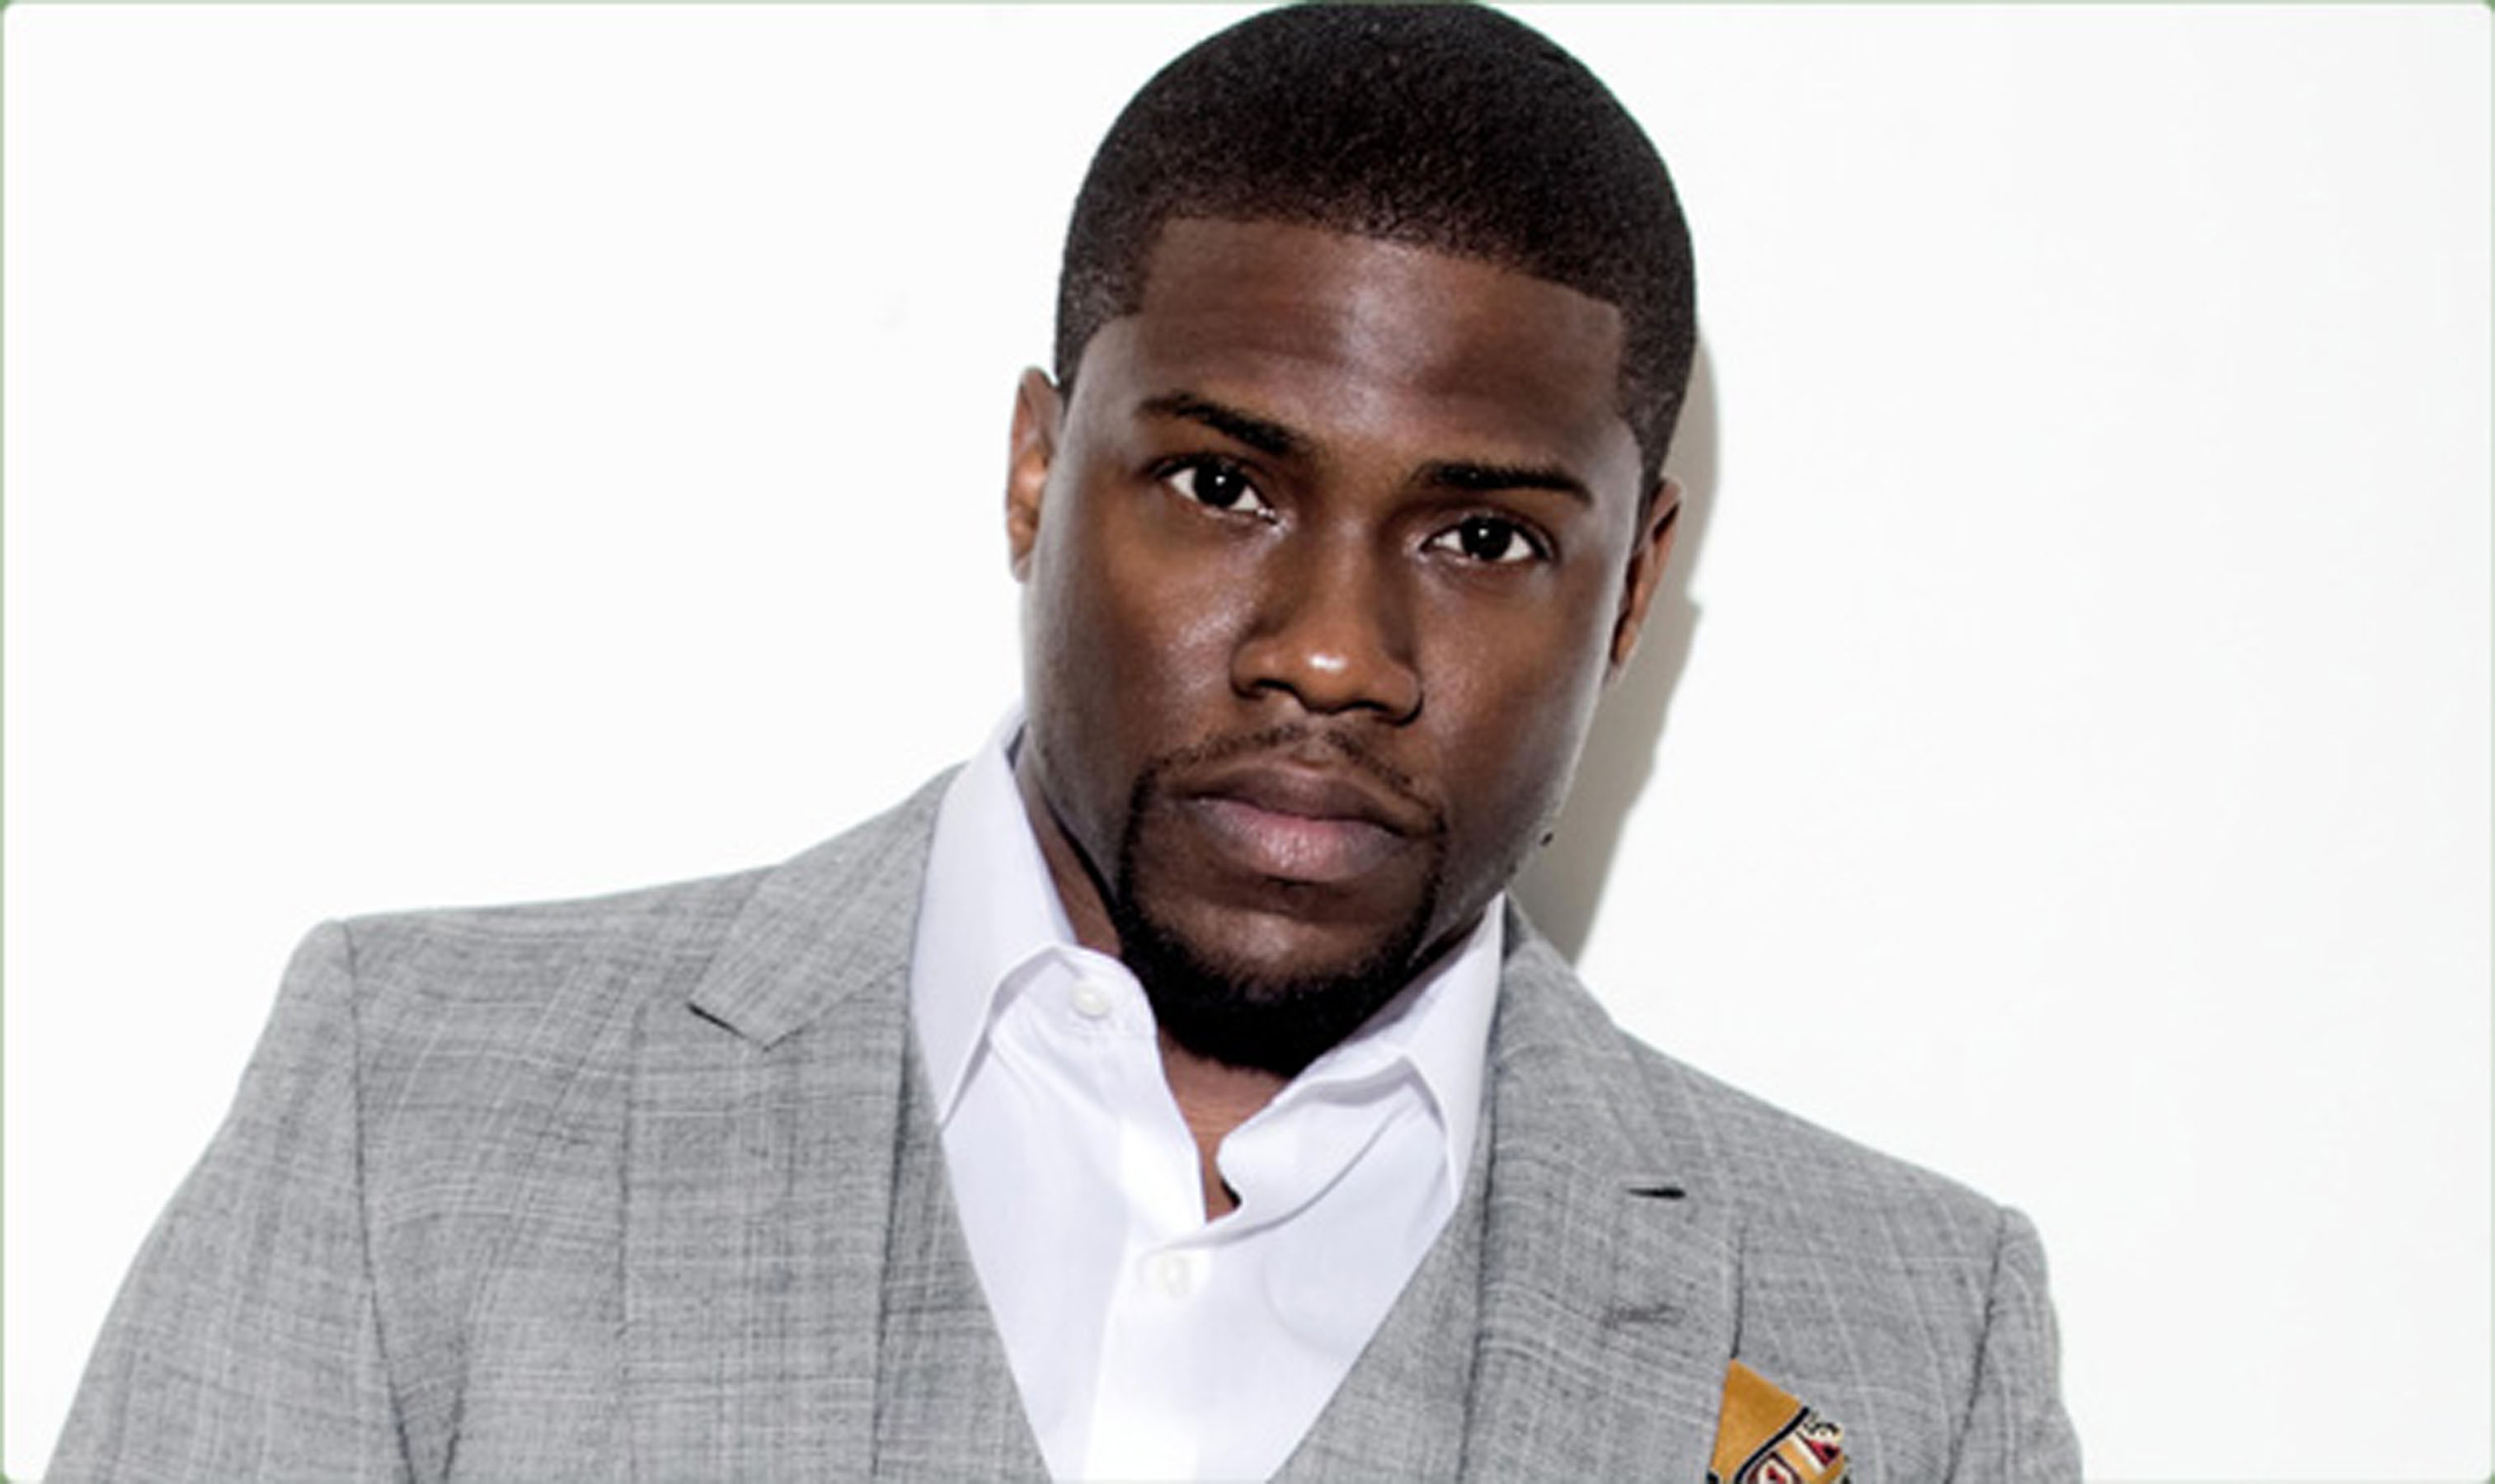 bf3d9745a7a7 Kevin Hart Net Worth - How Rich is Kevin Hart - Gazette Review ...